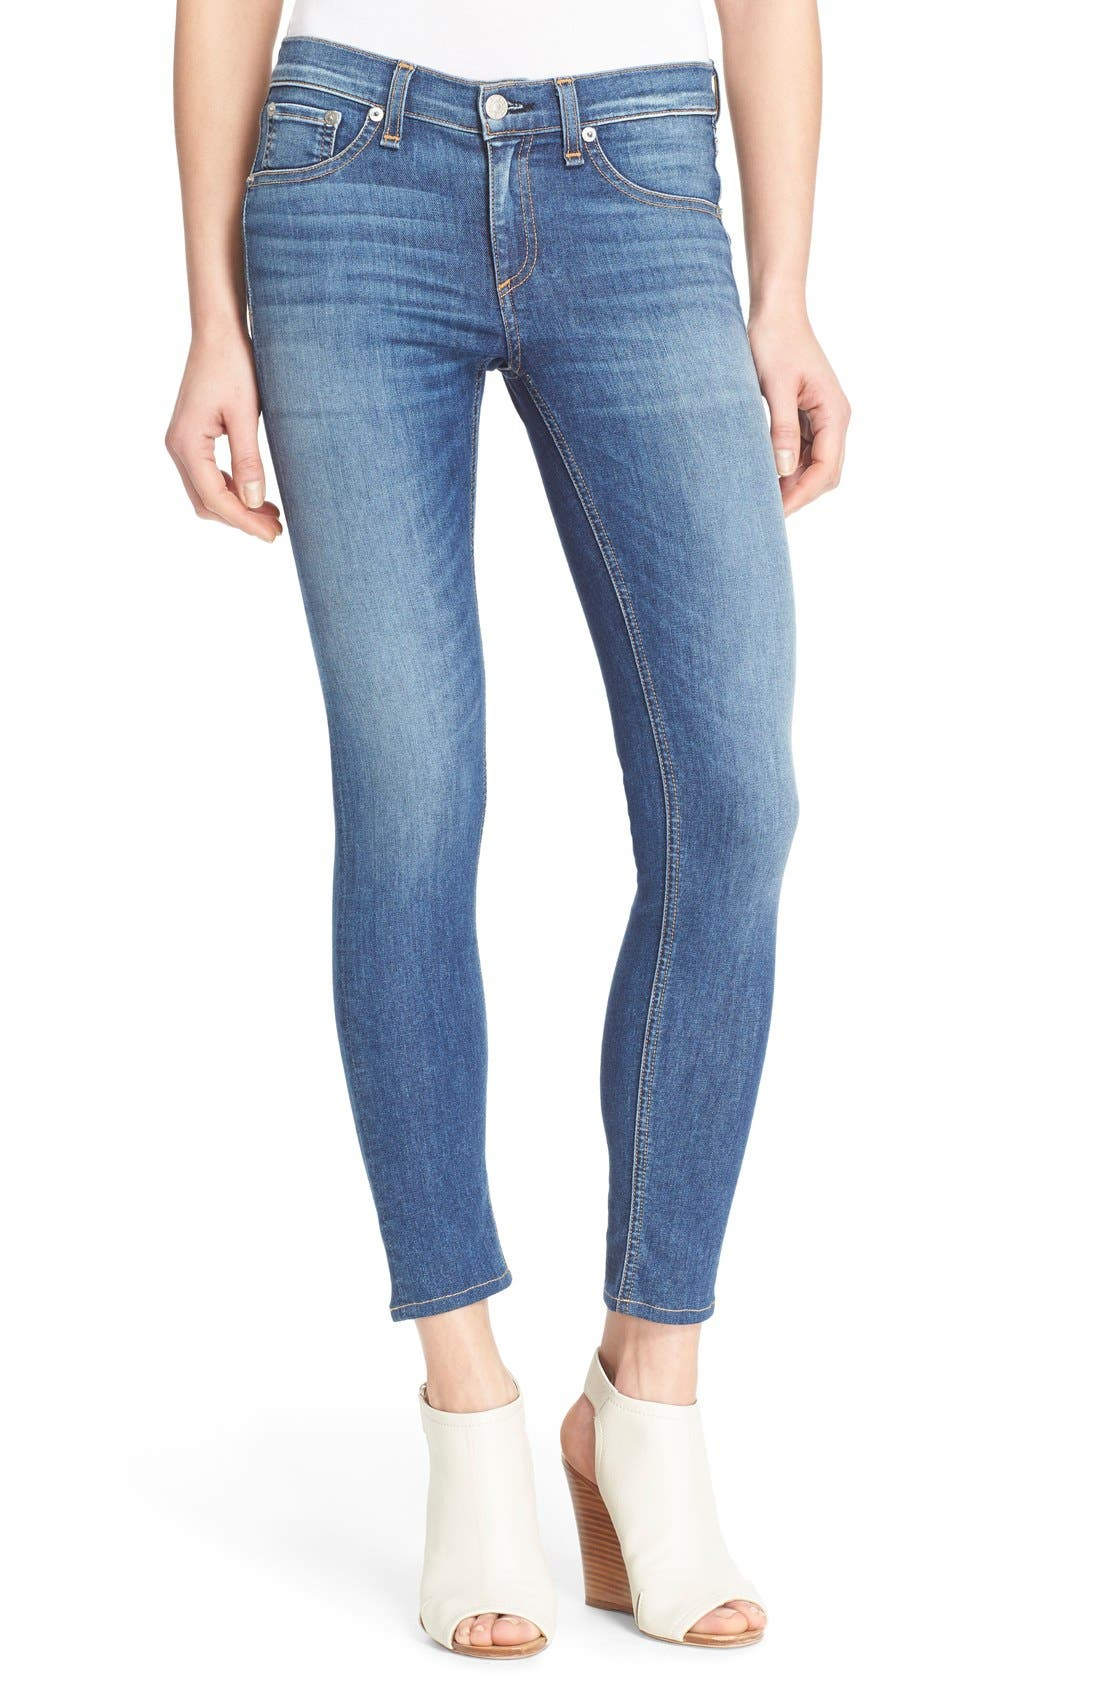 Skinny cropped denim jeans